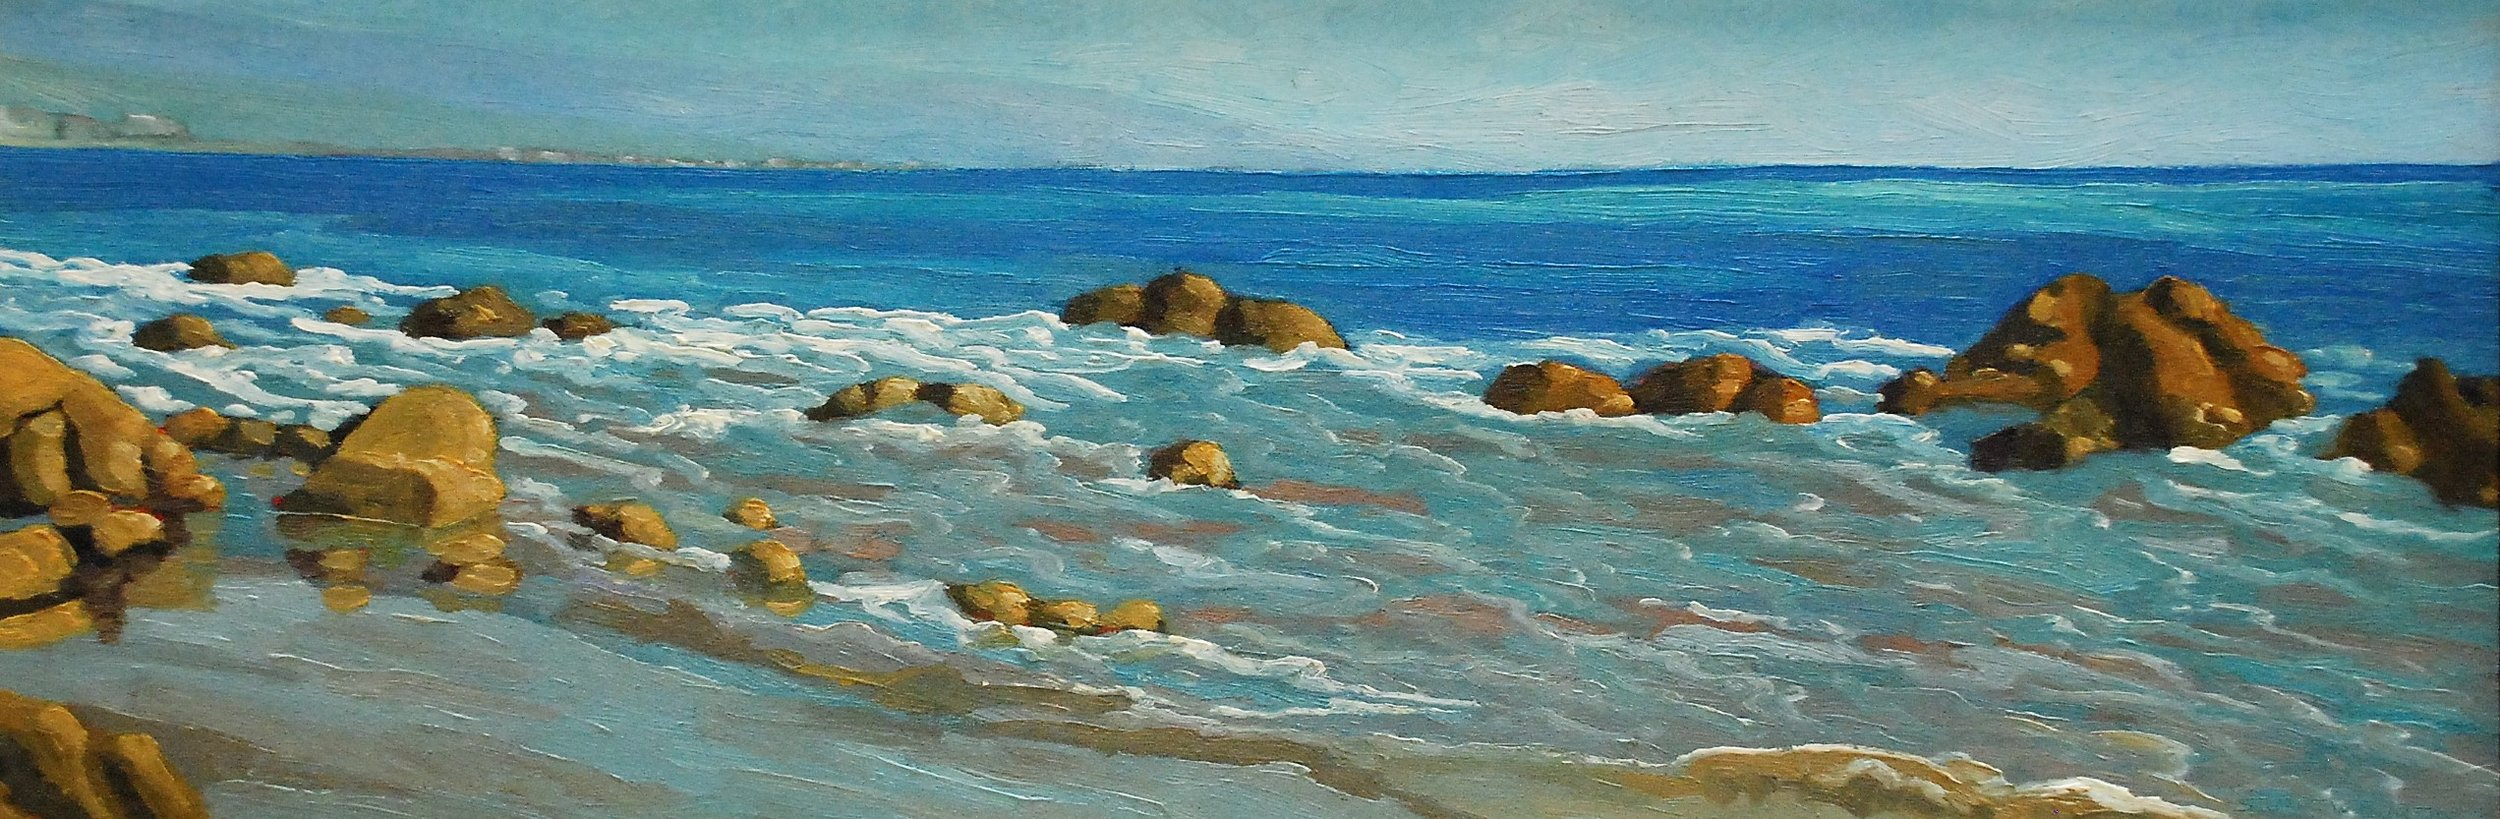 Low Tide Stream, Malibu    9x26     Oil on Panel     2003